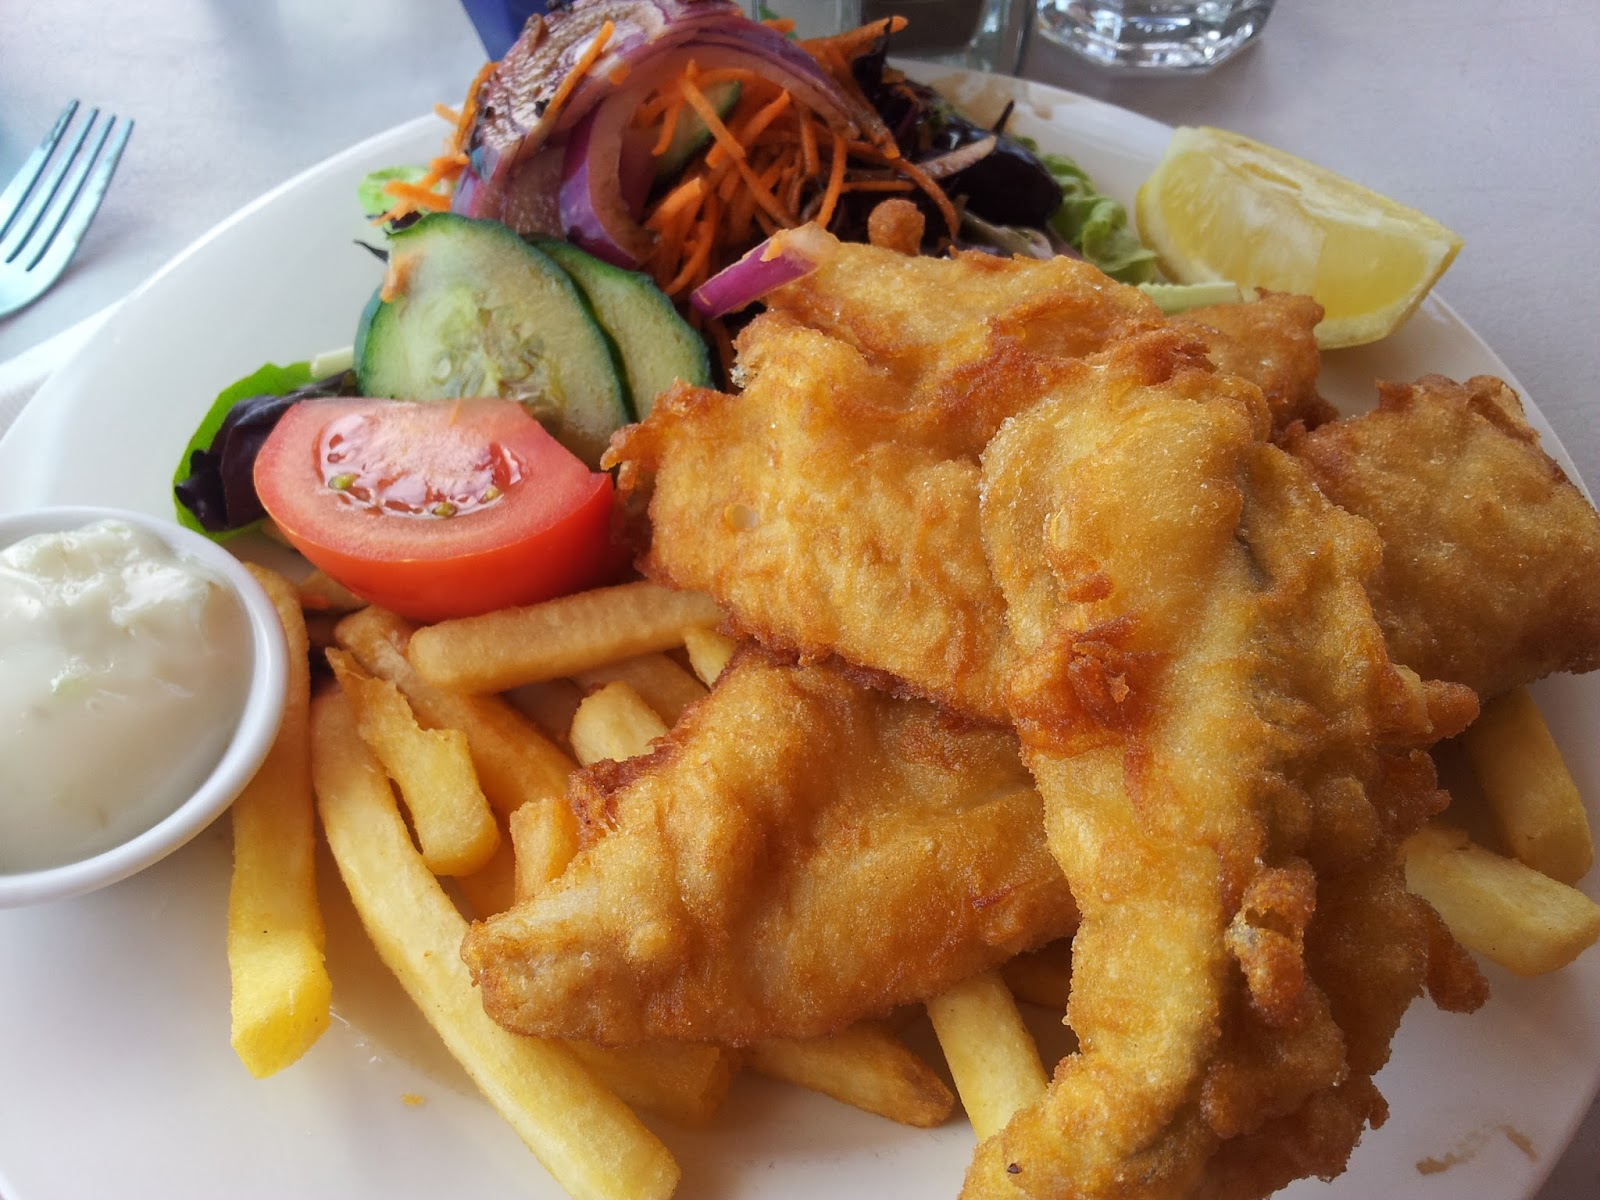 Glenelg, Beach, Fish, Chips, Fish and Chips, Seafood